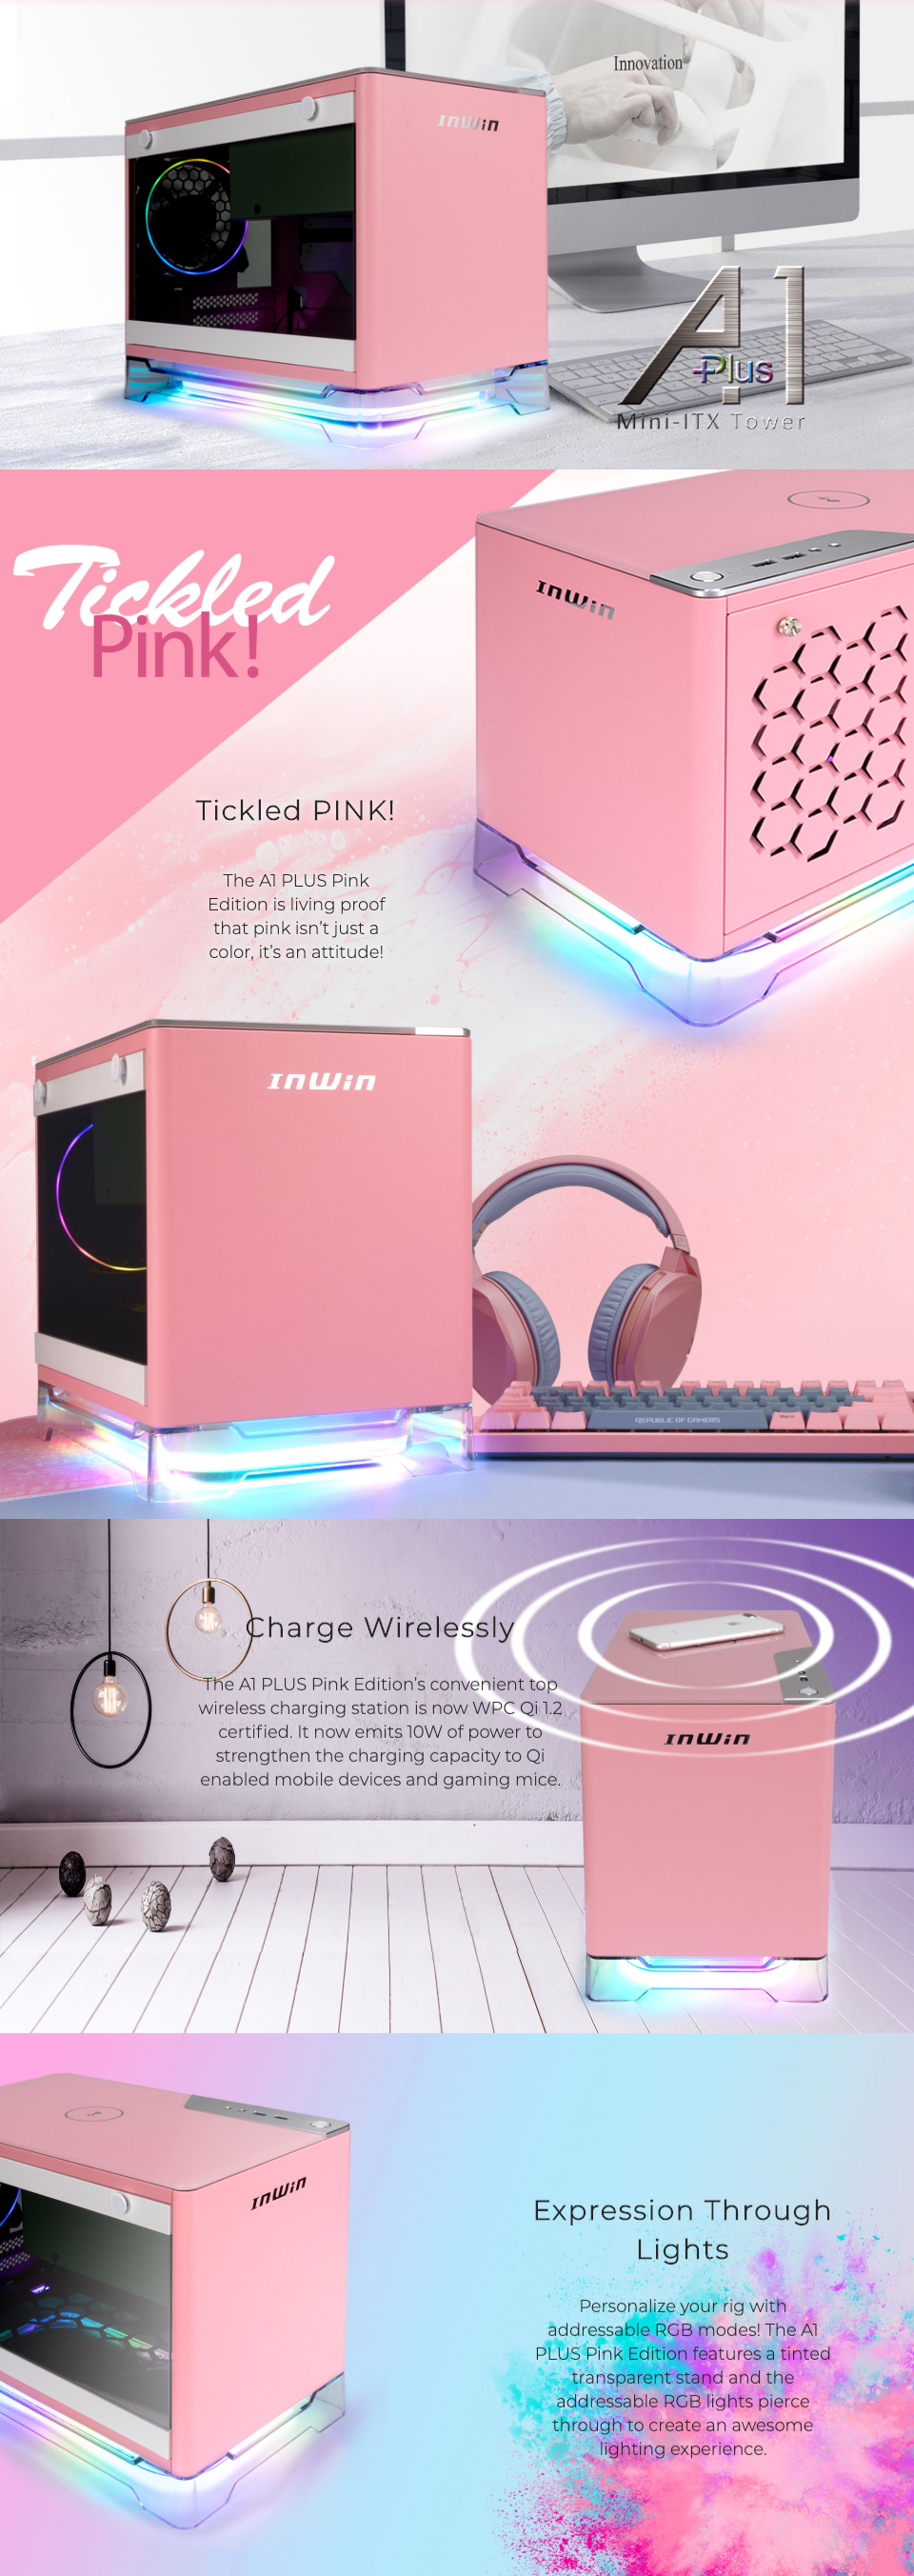 InWin A1 Plus Mini ITX Case with 650W PSU Pink features